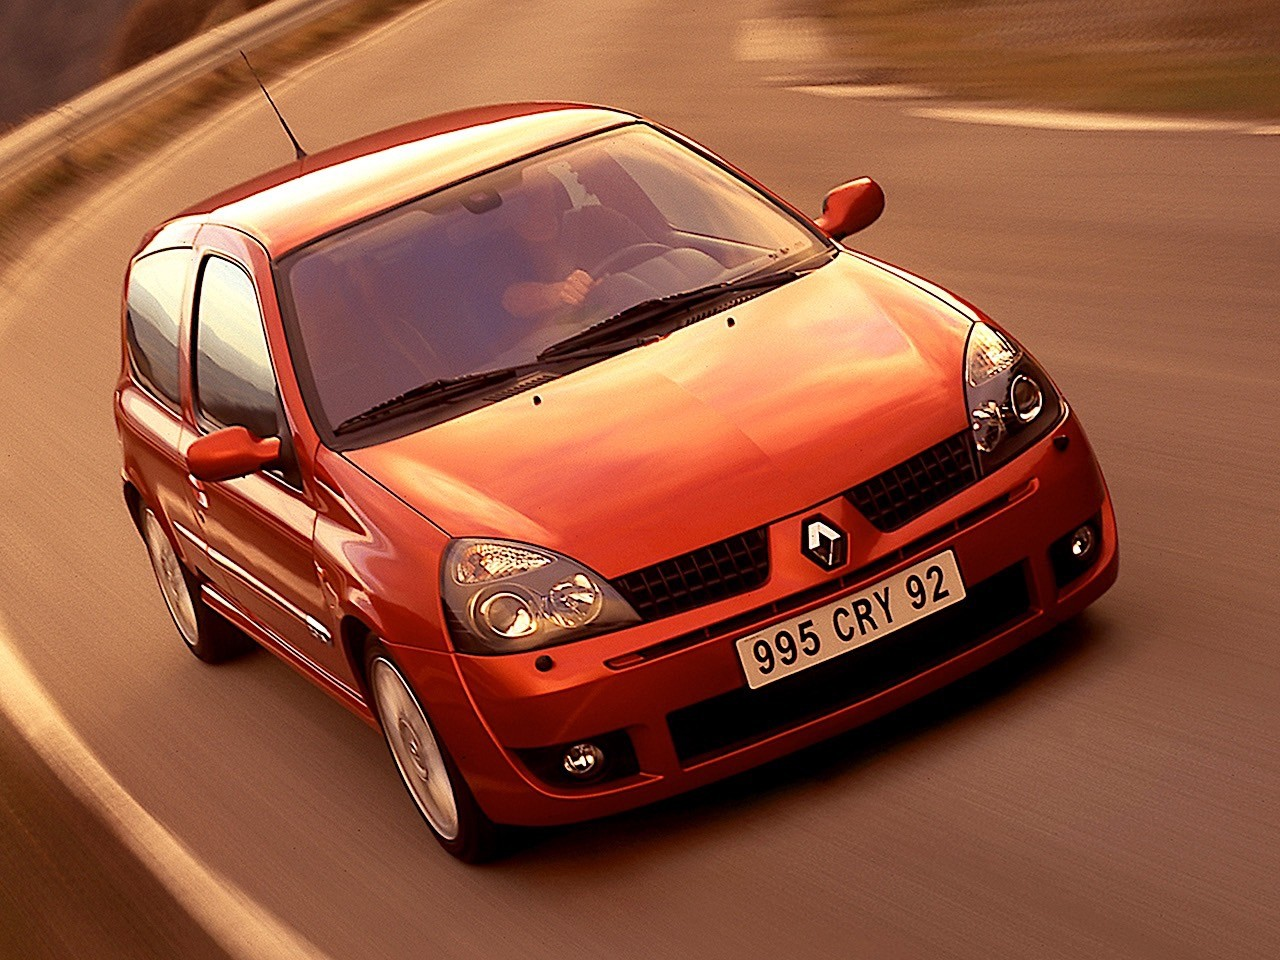 renault clio rs specs photos 2001 2002 2003 2004 2005 autoevolution. Black Bedroom Furniture Sets. Home Design Ideas